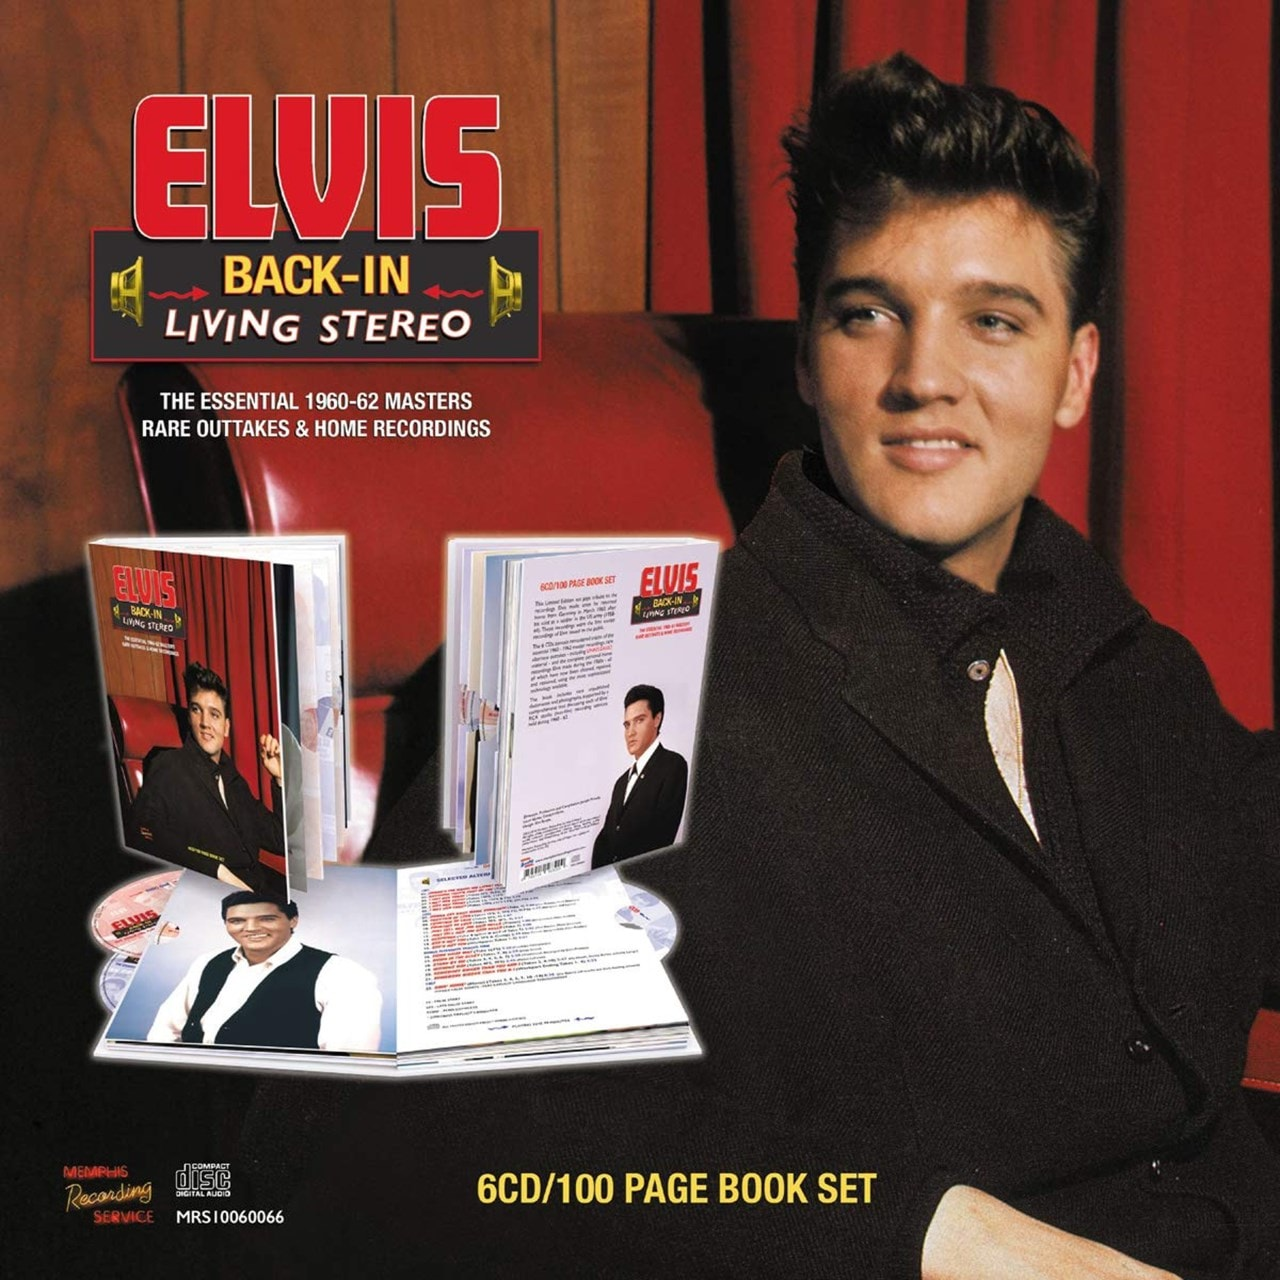 Back-in Living Stereo: The Essential 1960-62 Masters, Rare Outtakes & Home Recordings - 1